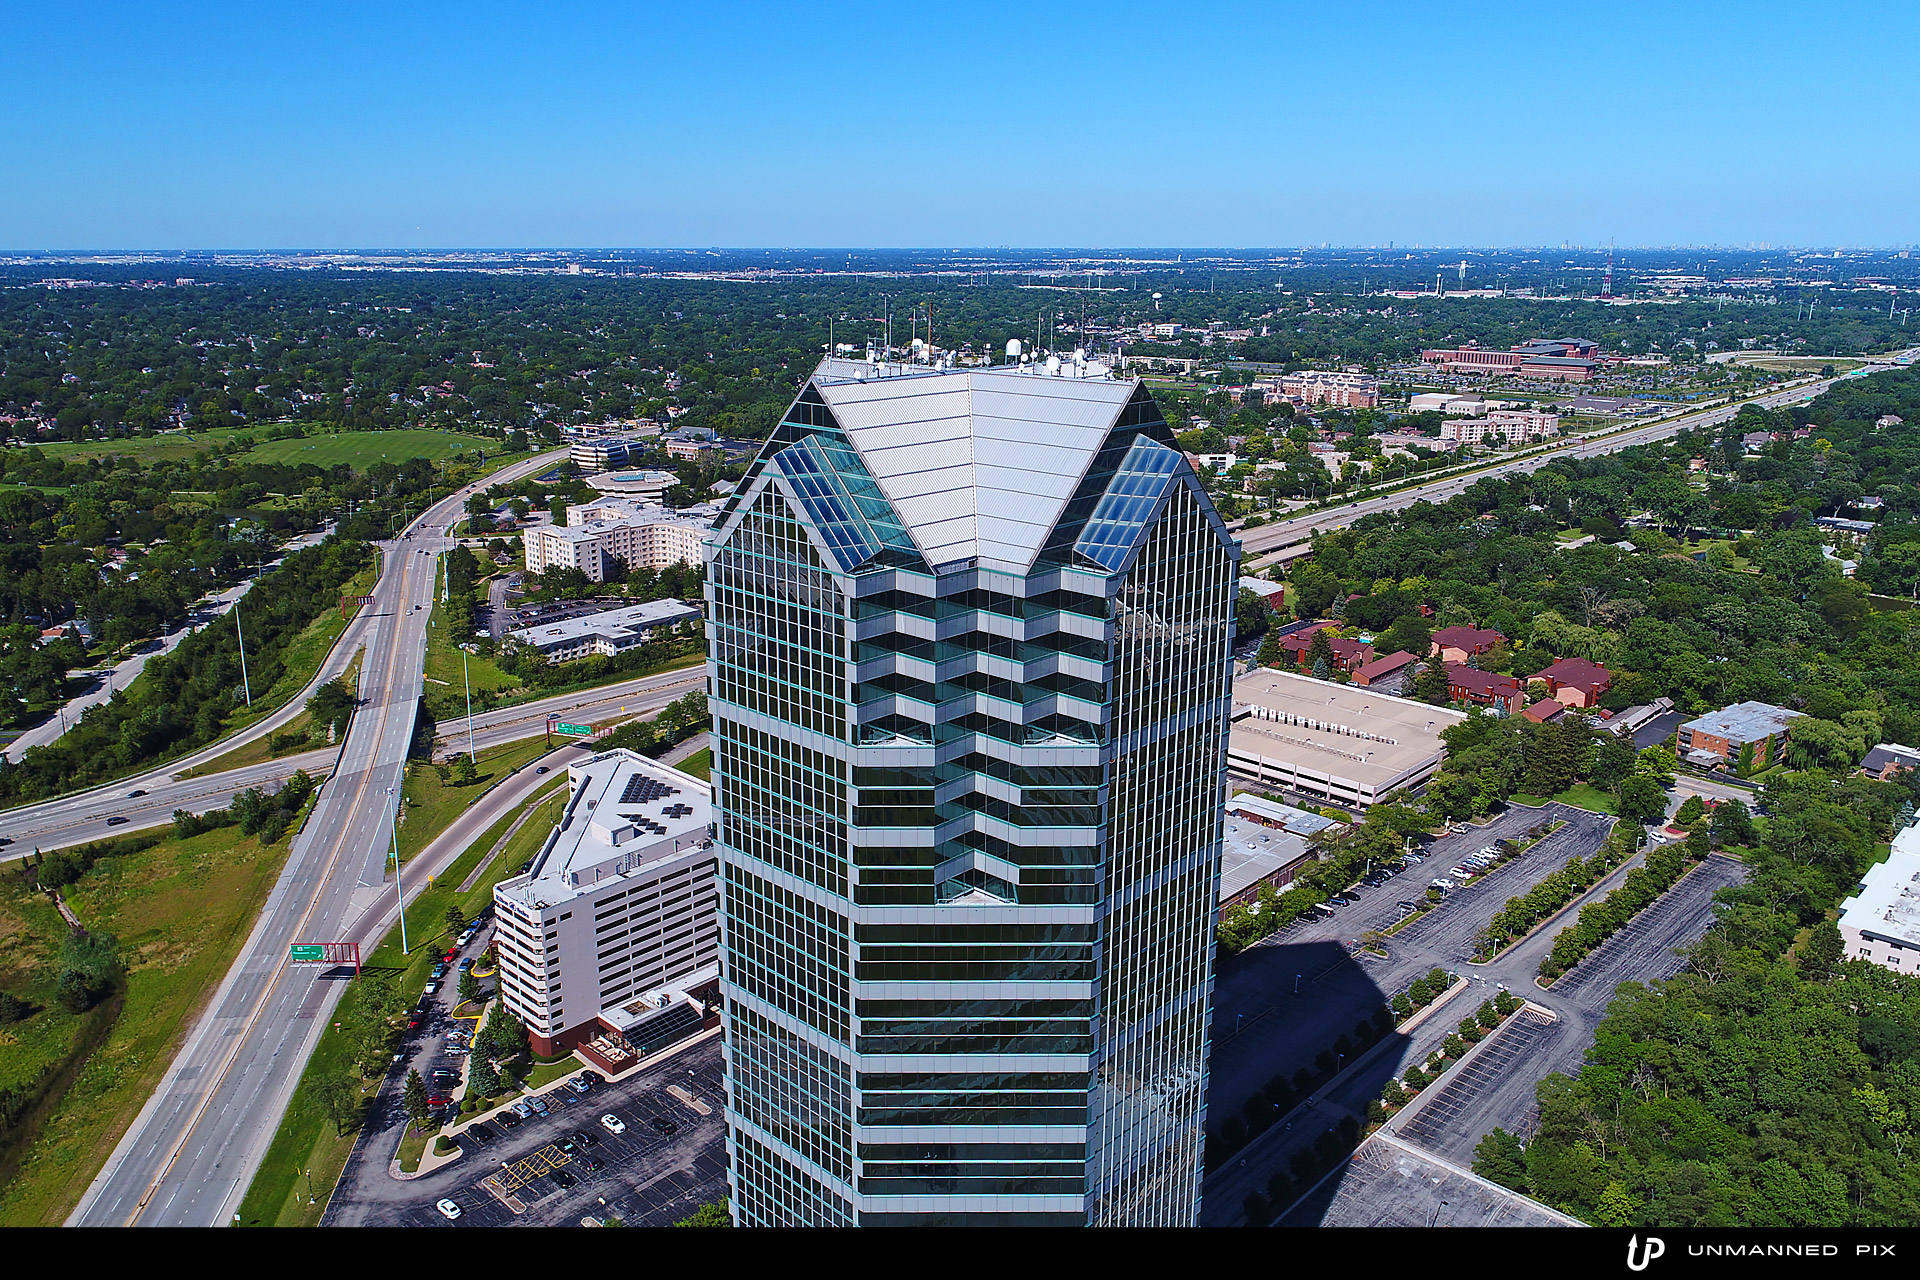 aerial view of the oakbrook terrace tower, facing north east, photographed by jacob rosenfeld for unmannedpix.com